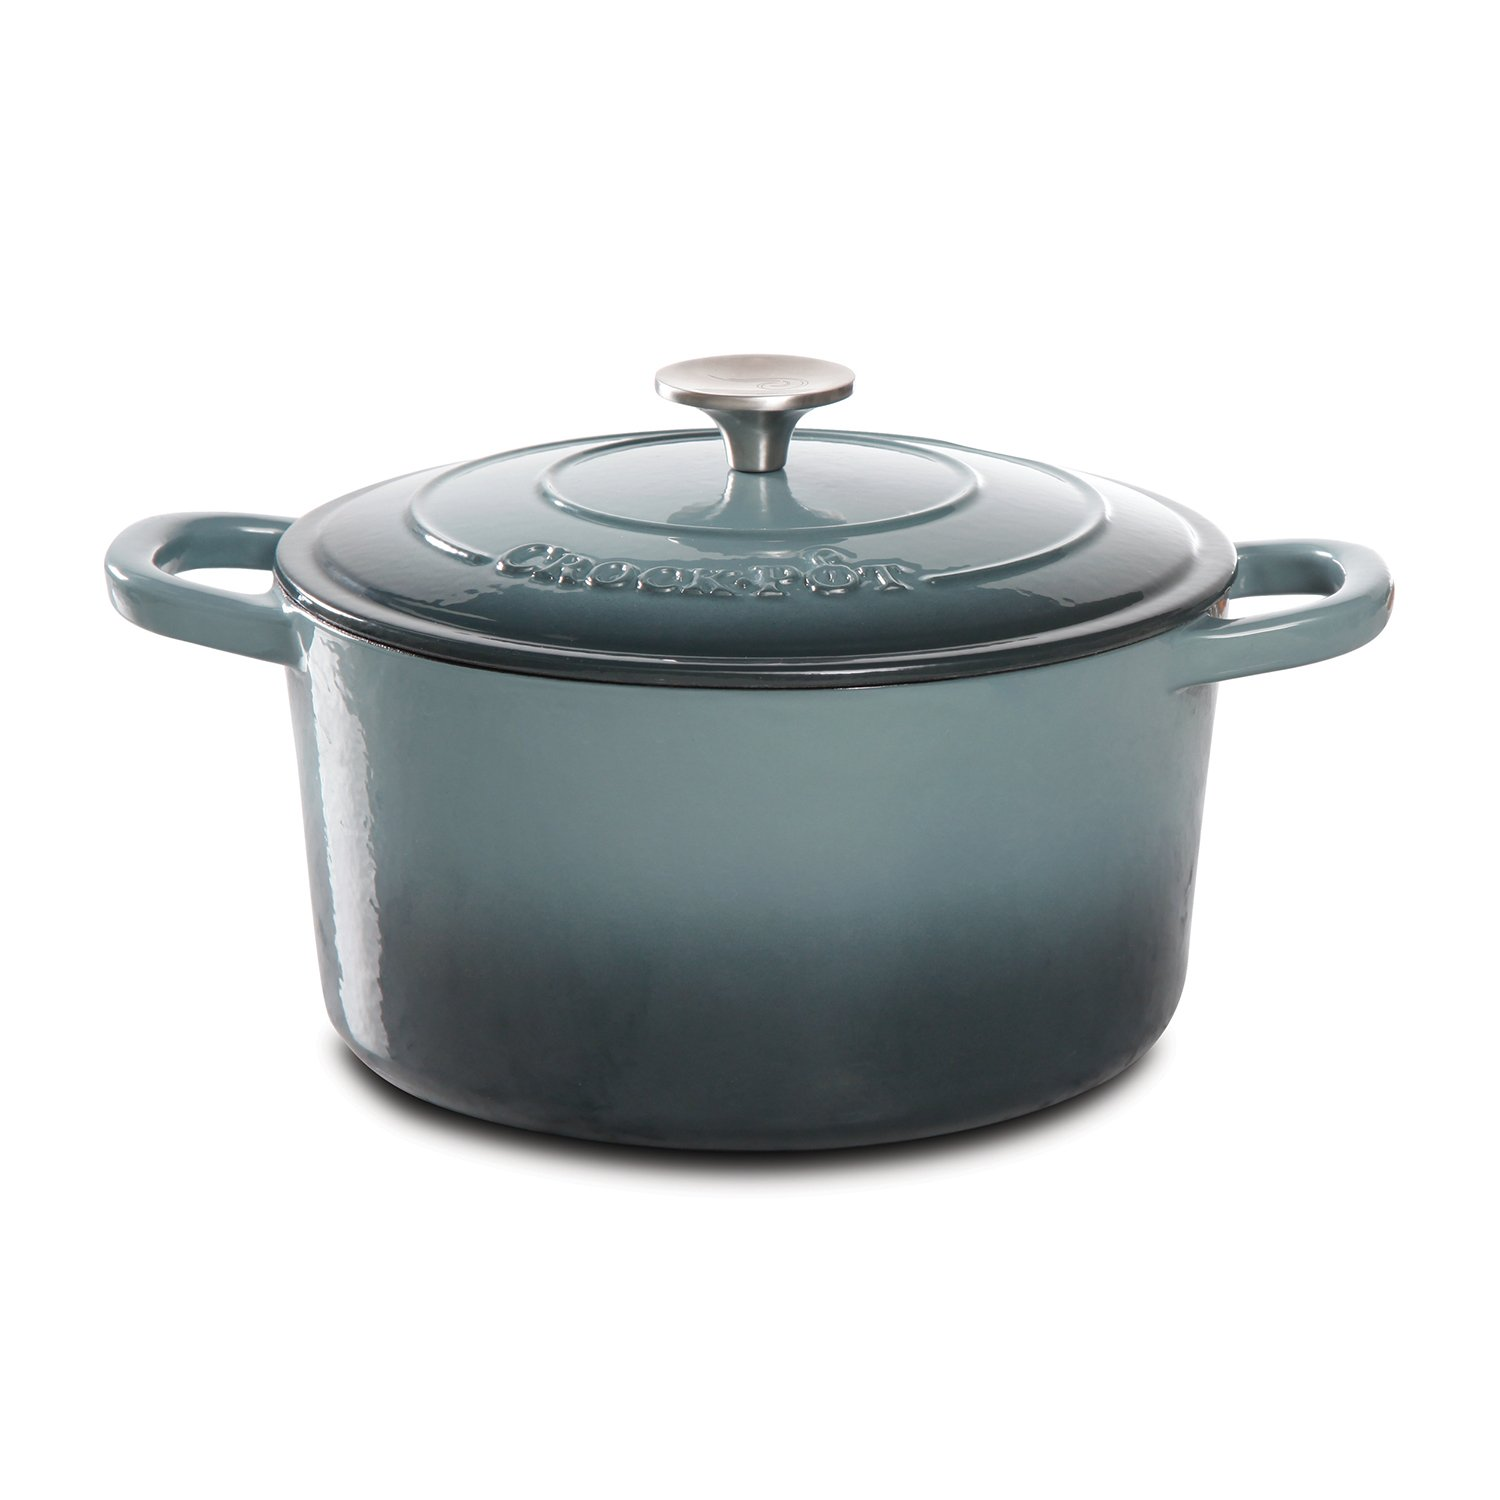 Crock Pot 69140.02 Artisan 5 Quart Enameled Cast Iron Round Dutch Oven, Slate Gray